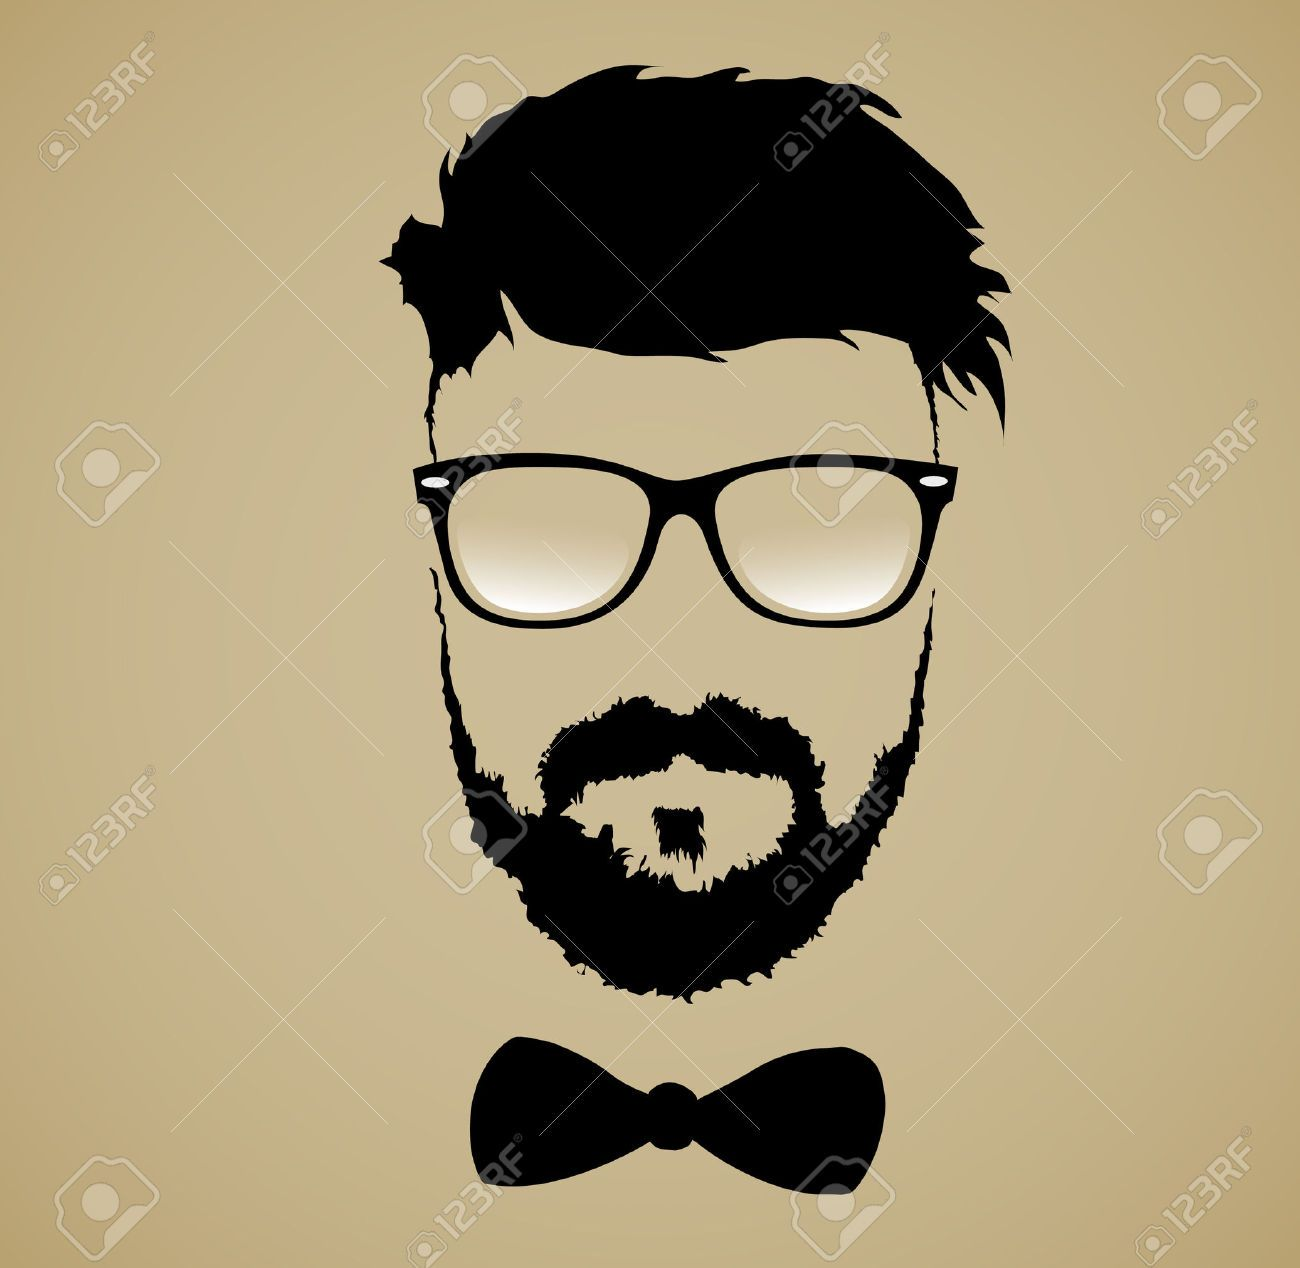 Clipart black and white man wearing sunglasses you rock jpg black and white download Stock Vector | Art | Beard silhouette, Hipster haircut, Beard clipart jpg black and white download